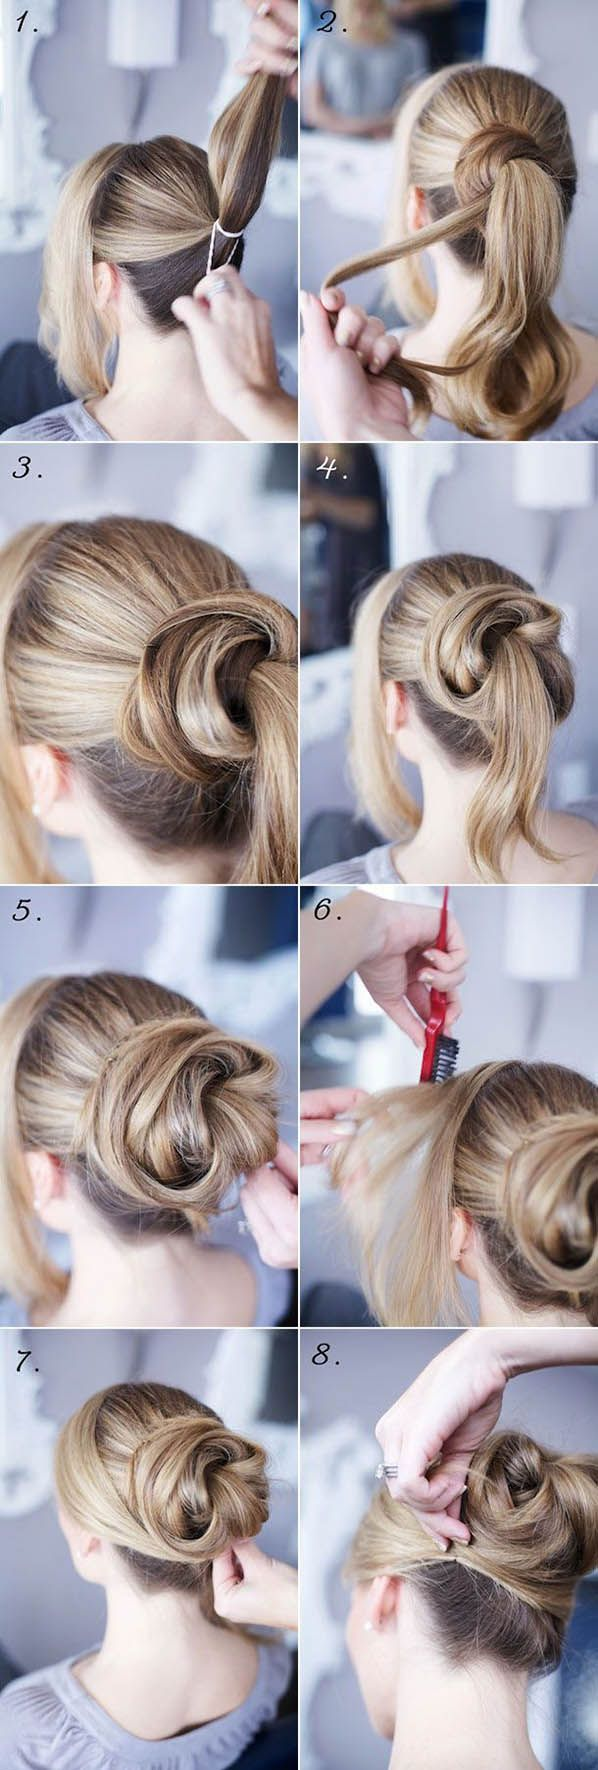 8 Step To DIY Hair Tutorials_Girl Hairstyle Tutorials Step by Step Guides